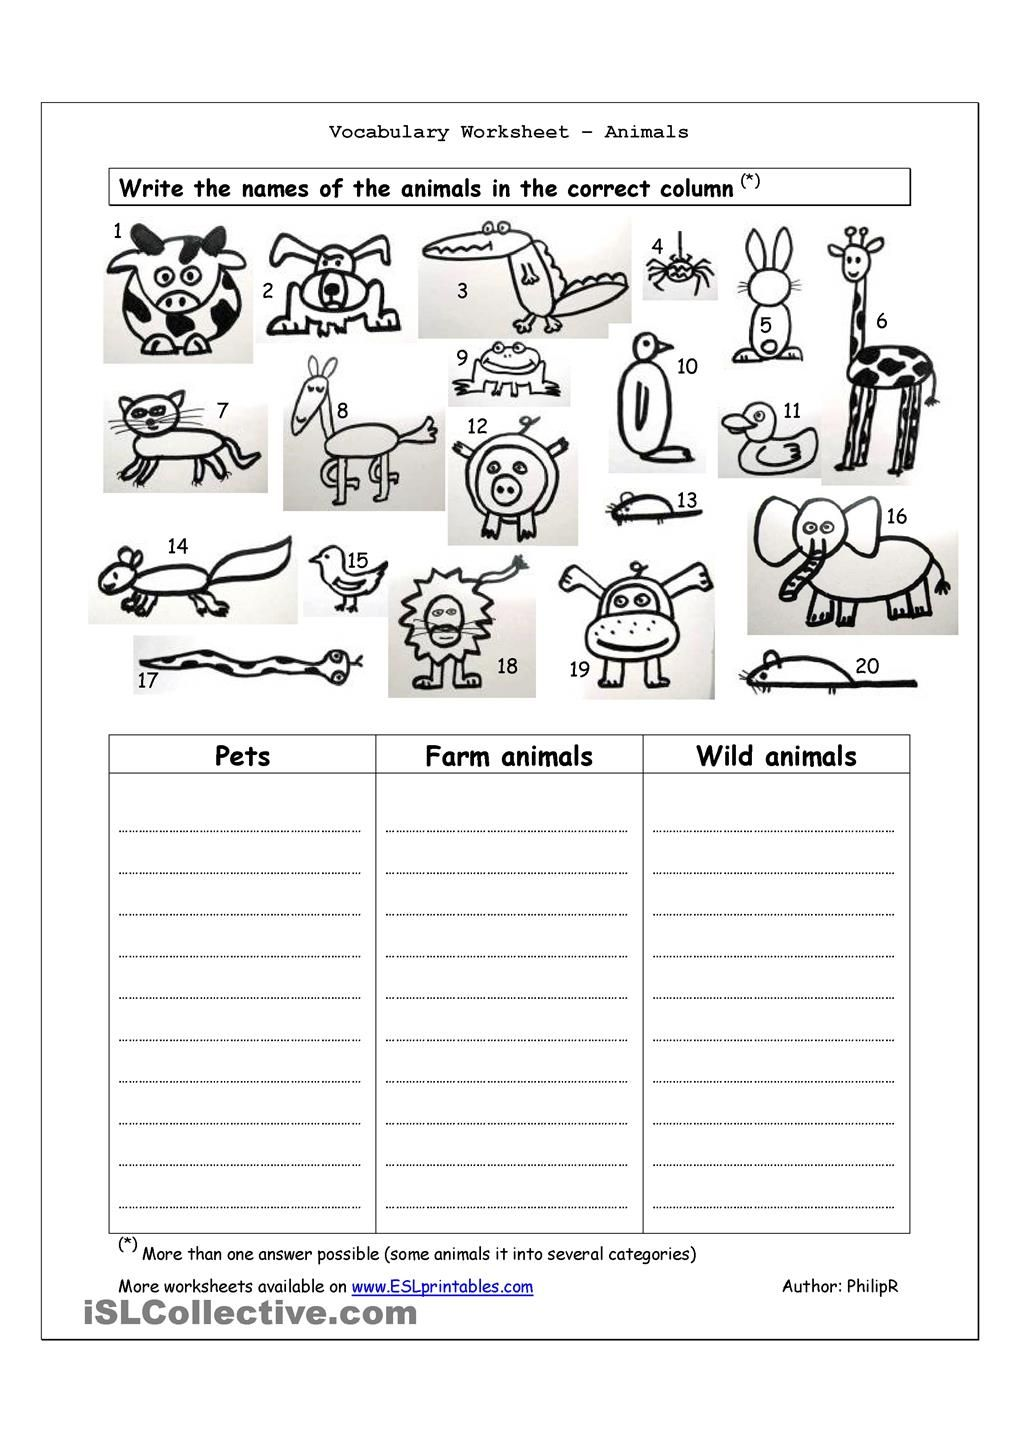 Vocabulary Worksheet Animals English 4th grade